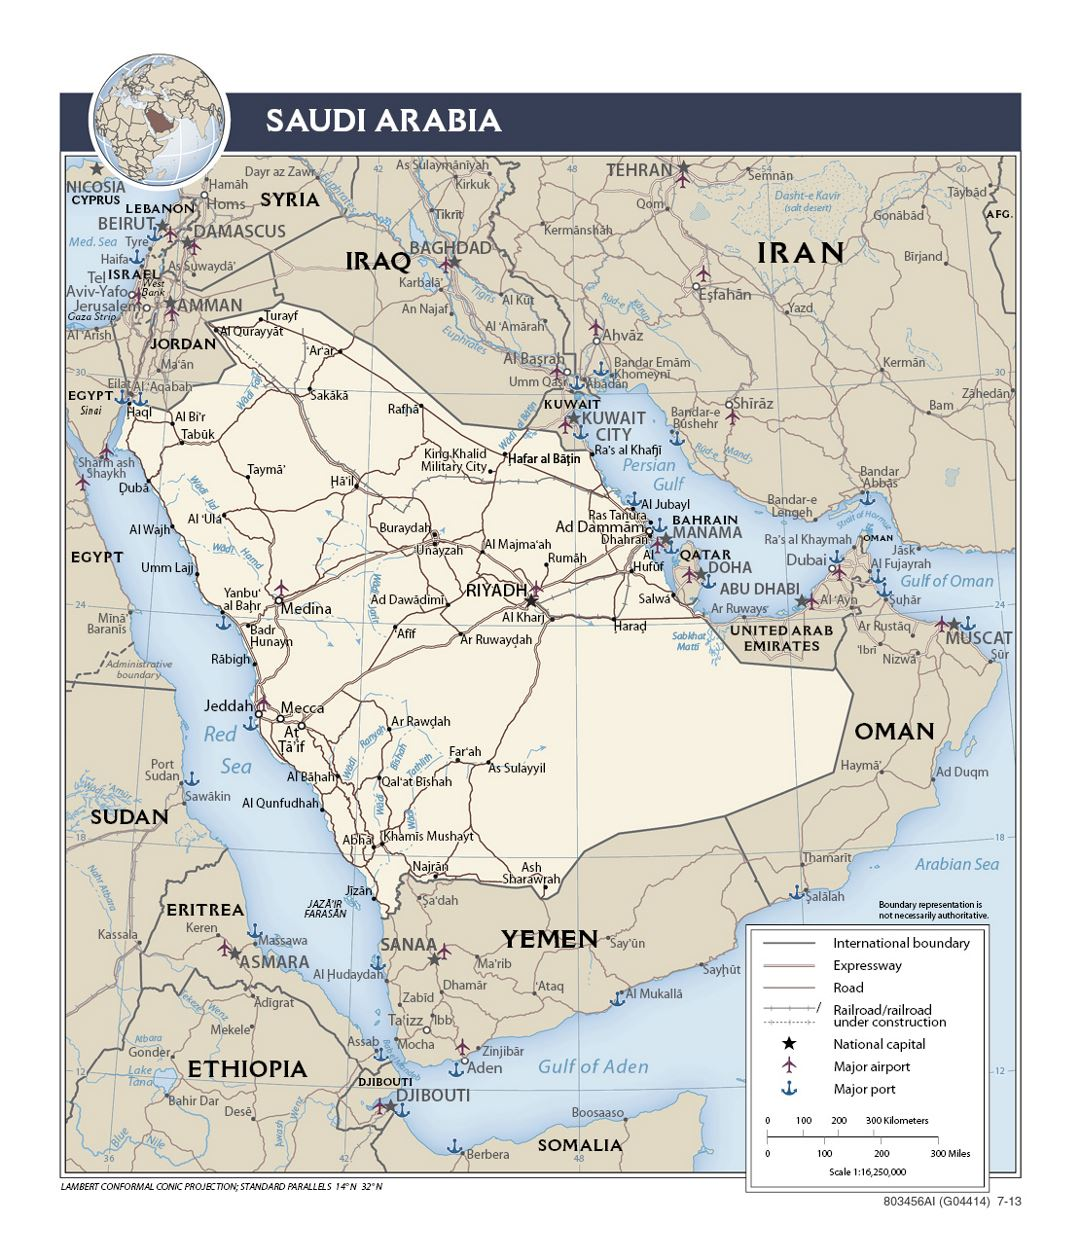 Detailed political map of Saudi Arabia with roads, railroads, ports, airports and major cities - 2013